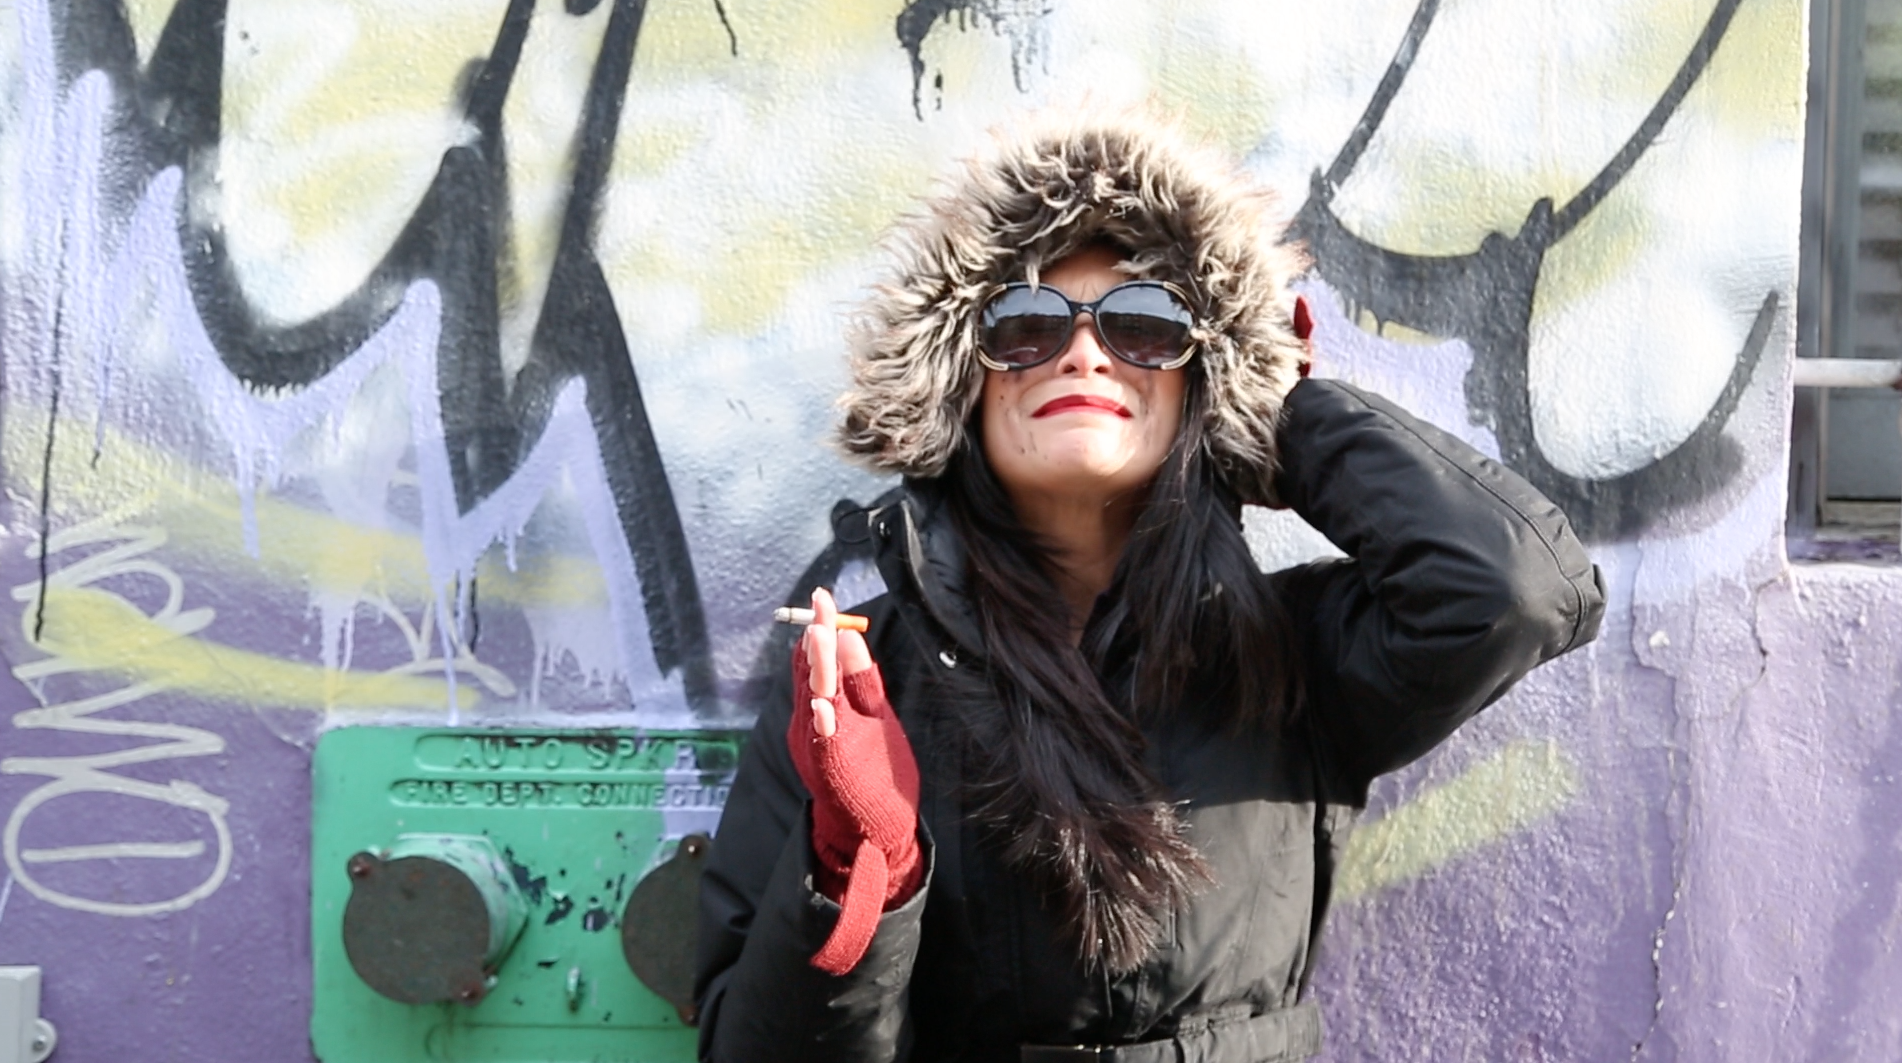 Hipster Girl has had enough with life. — with Vanessa Hernandez at Lower East Side Manhattan Ny.